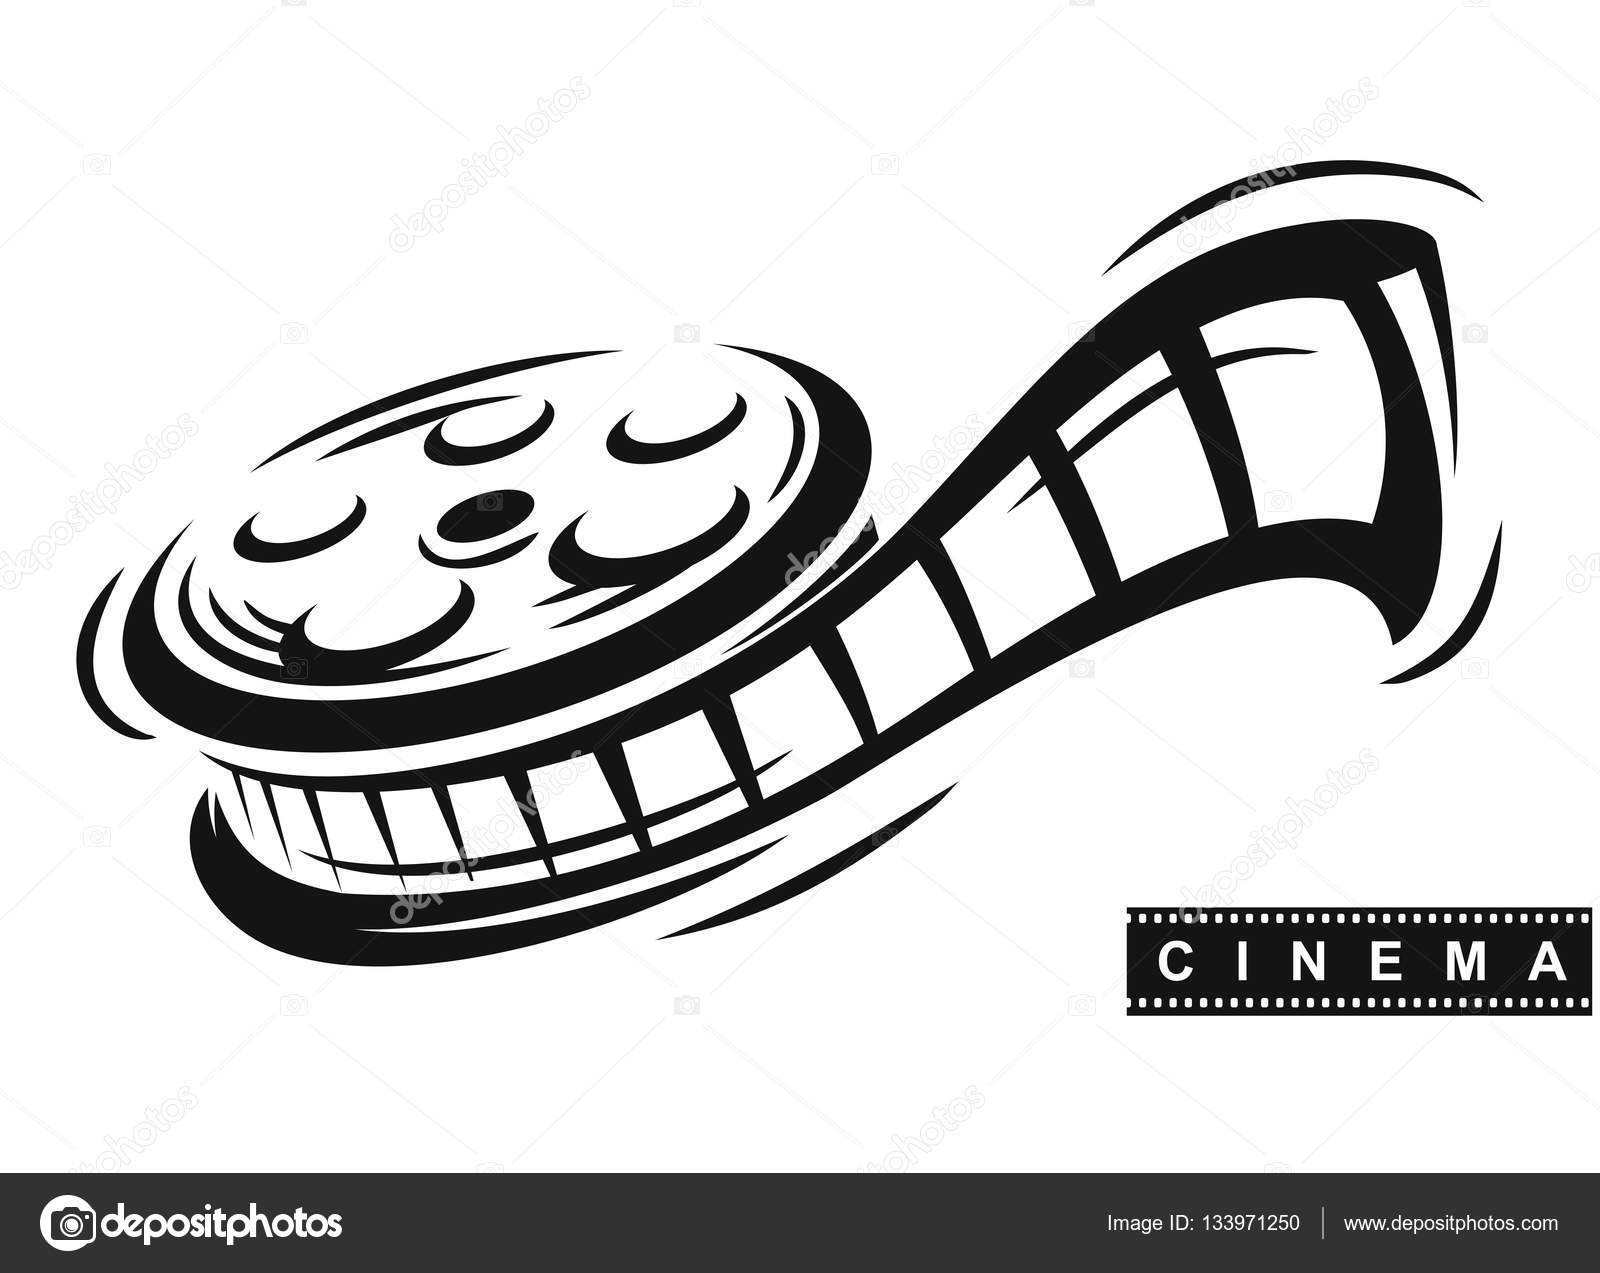 Ewr hoto Movie Film Roll Background additionally 58376 likewise Royalty Free Stock Images Tv Station Icons Image Vector Illustration Can Be Scaled To Any Size Loss Resolution Image37499119 further Movie Camera Clip Art Image 42331 furthermore Frontal Reflex Camera. on vintage film strip